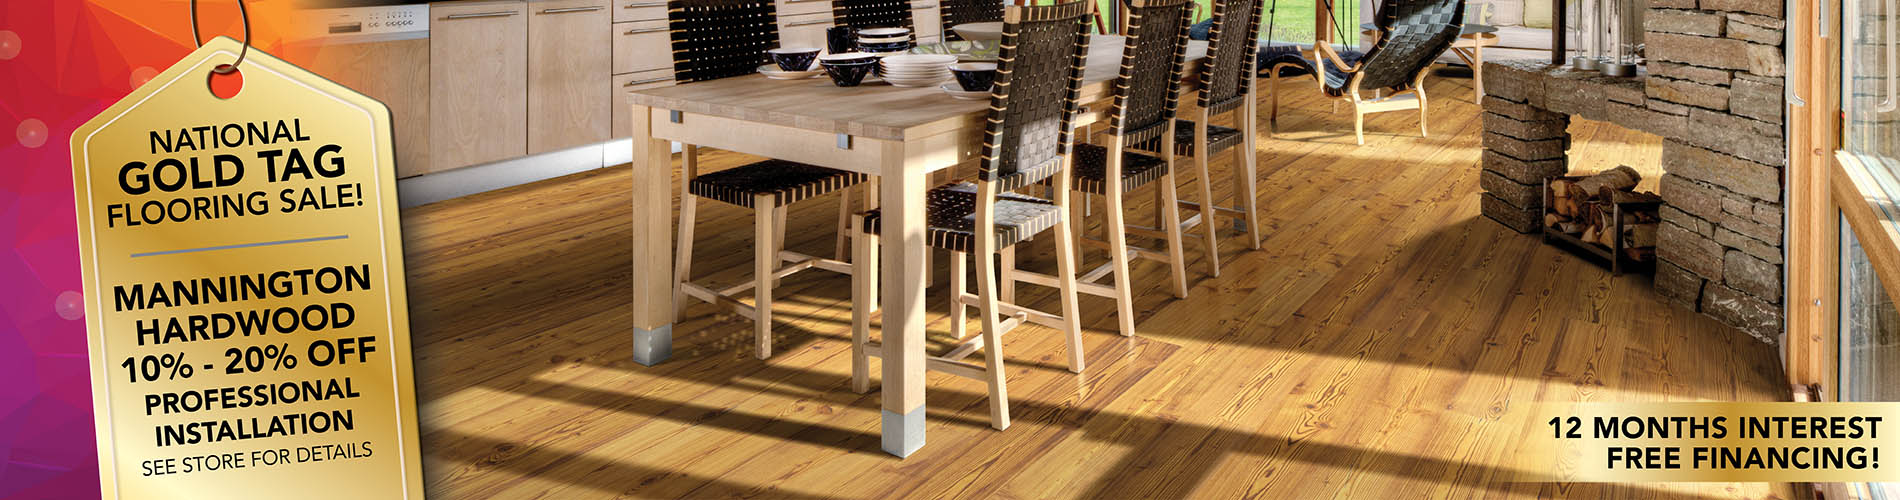 Mannington hardwood is 10% - 20% off professional installation during our National Gold Tag Flooring Sale. See store for details